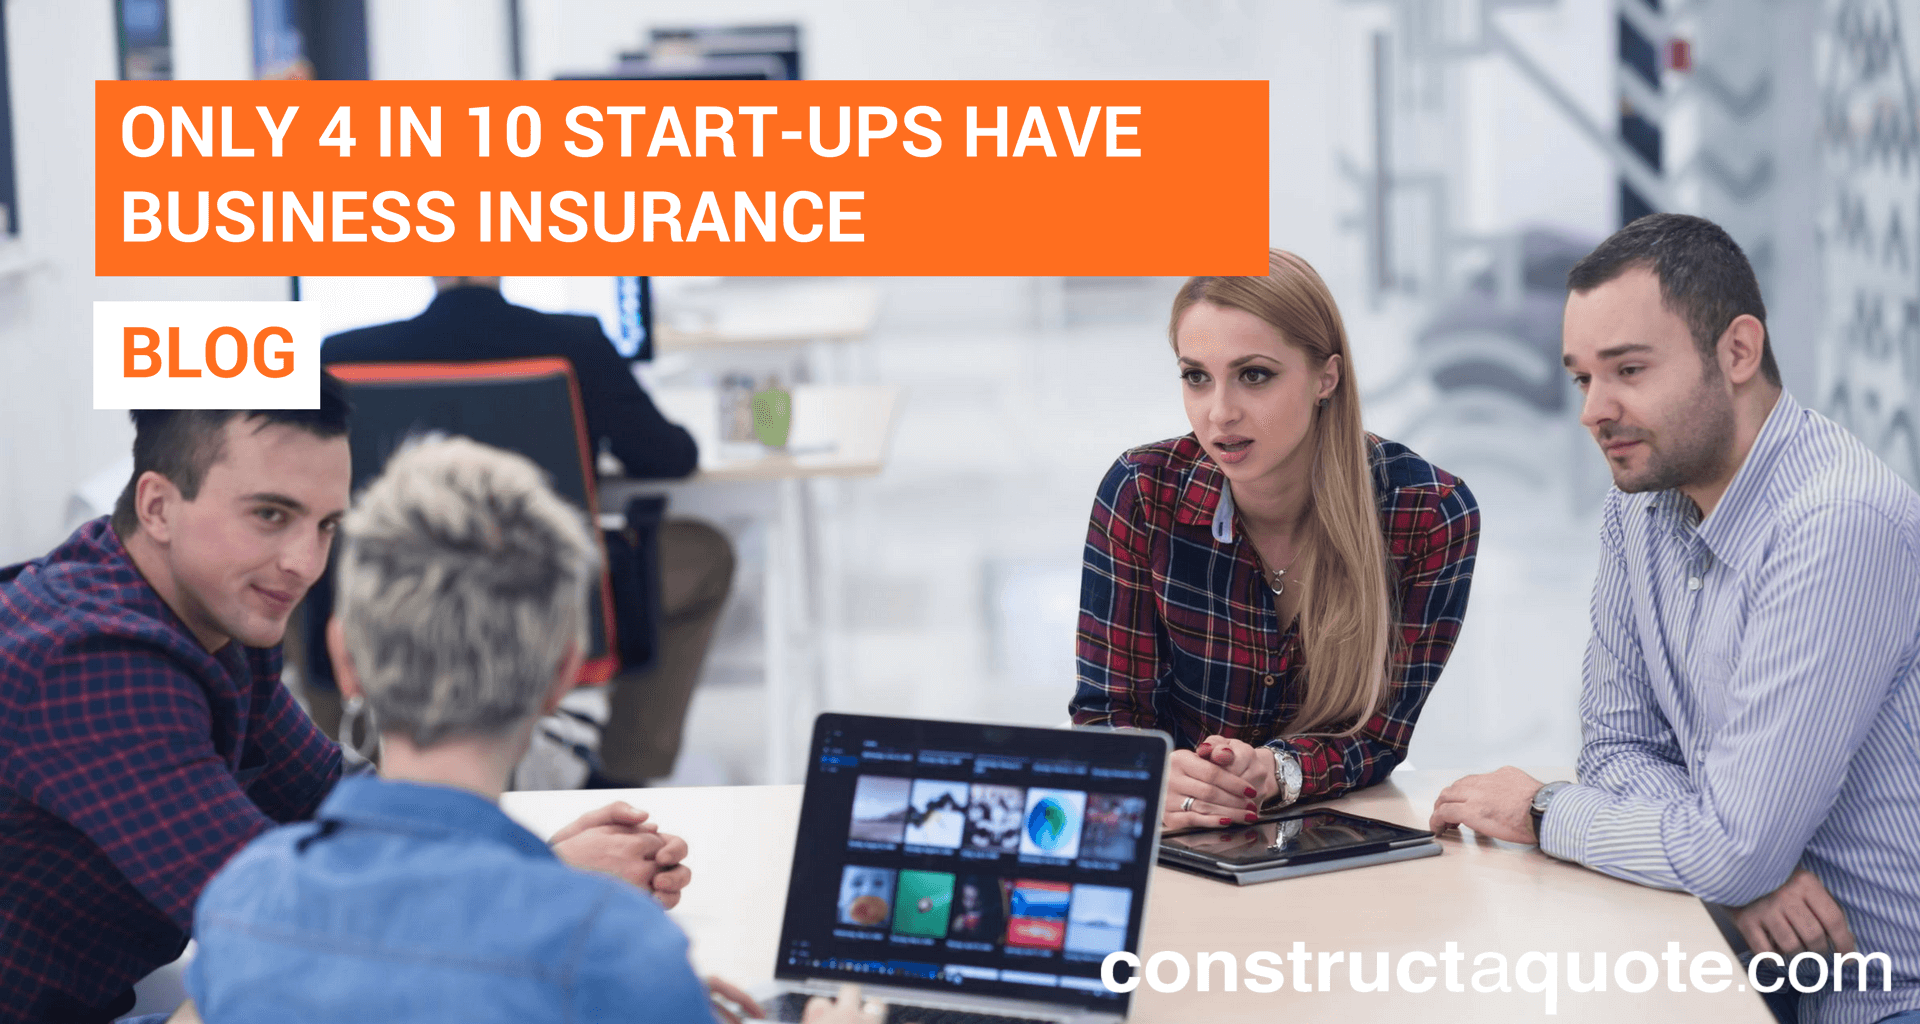 U.K start-ups soar, but only 4 in 10 small businesses have insurance